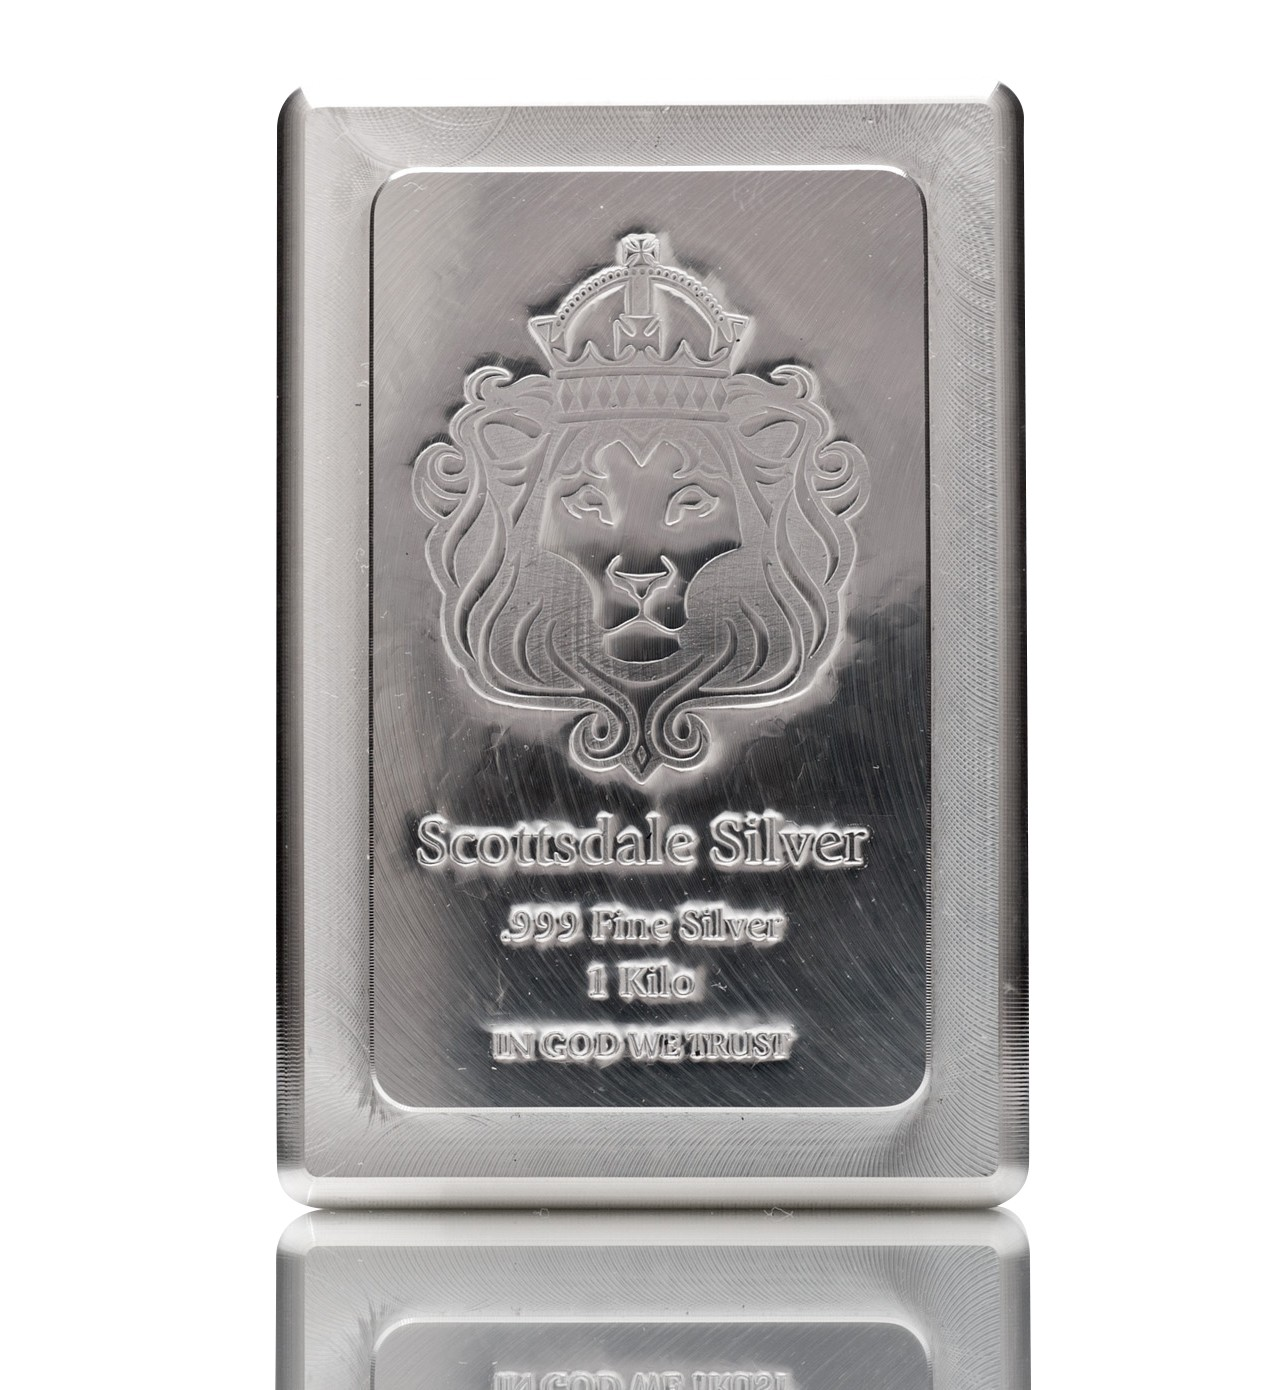 1kg Scottsdale KILO Stacker Silver Bar